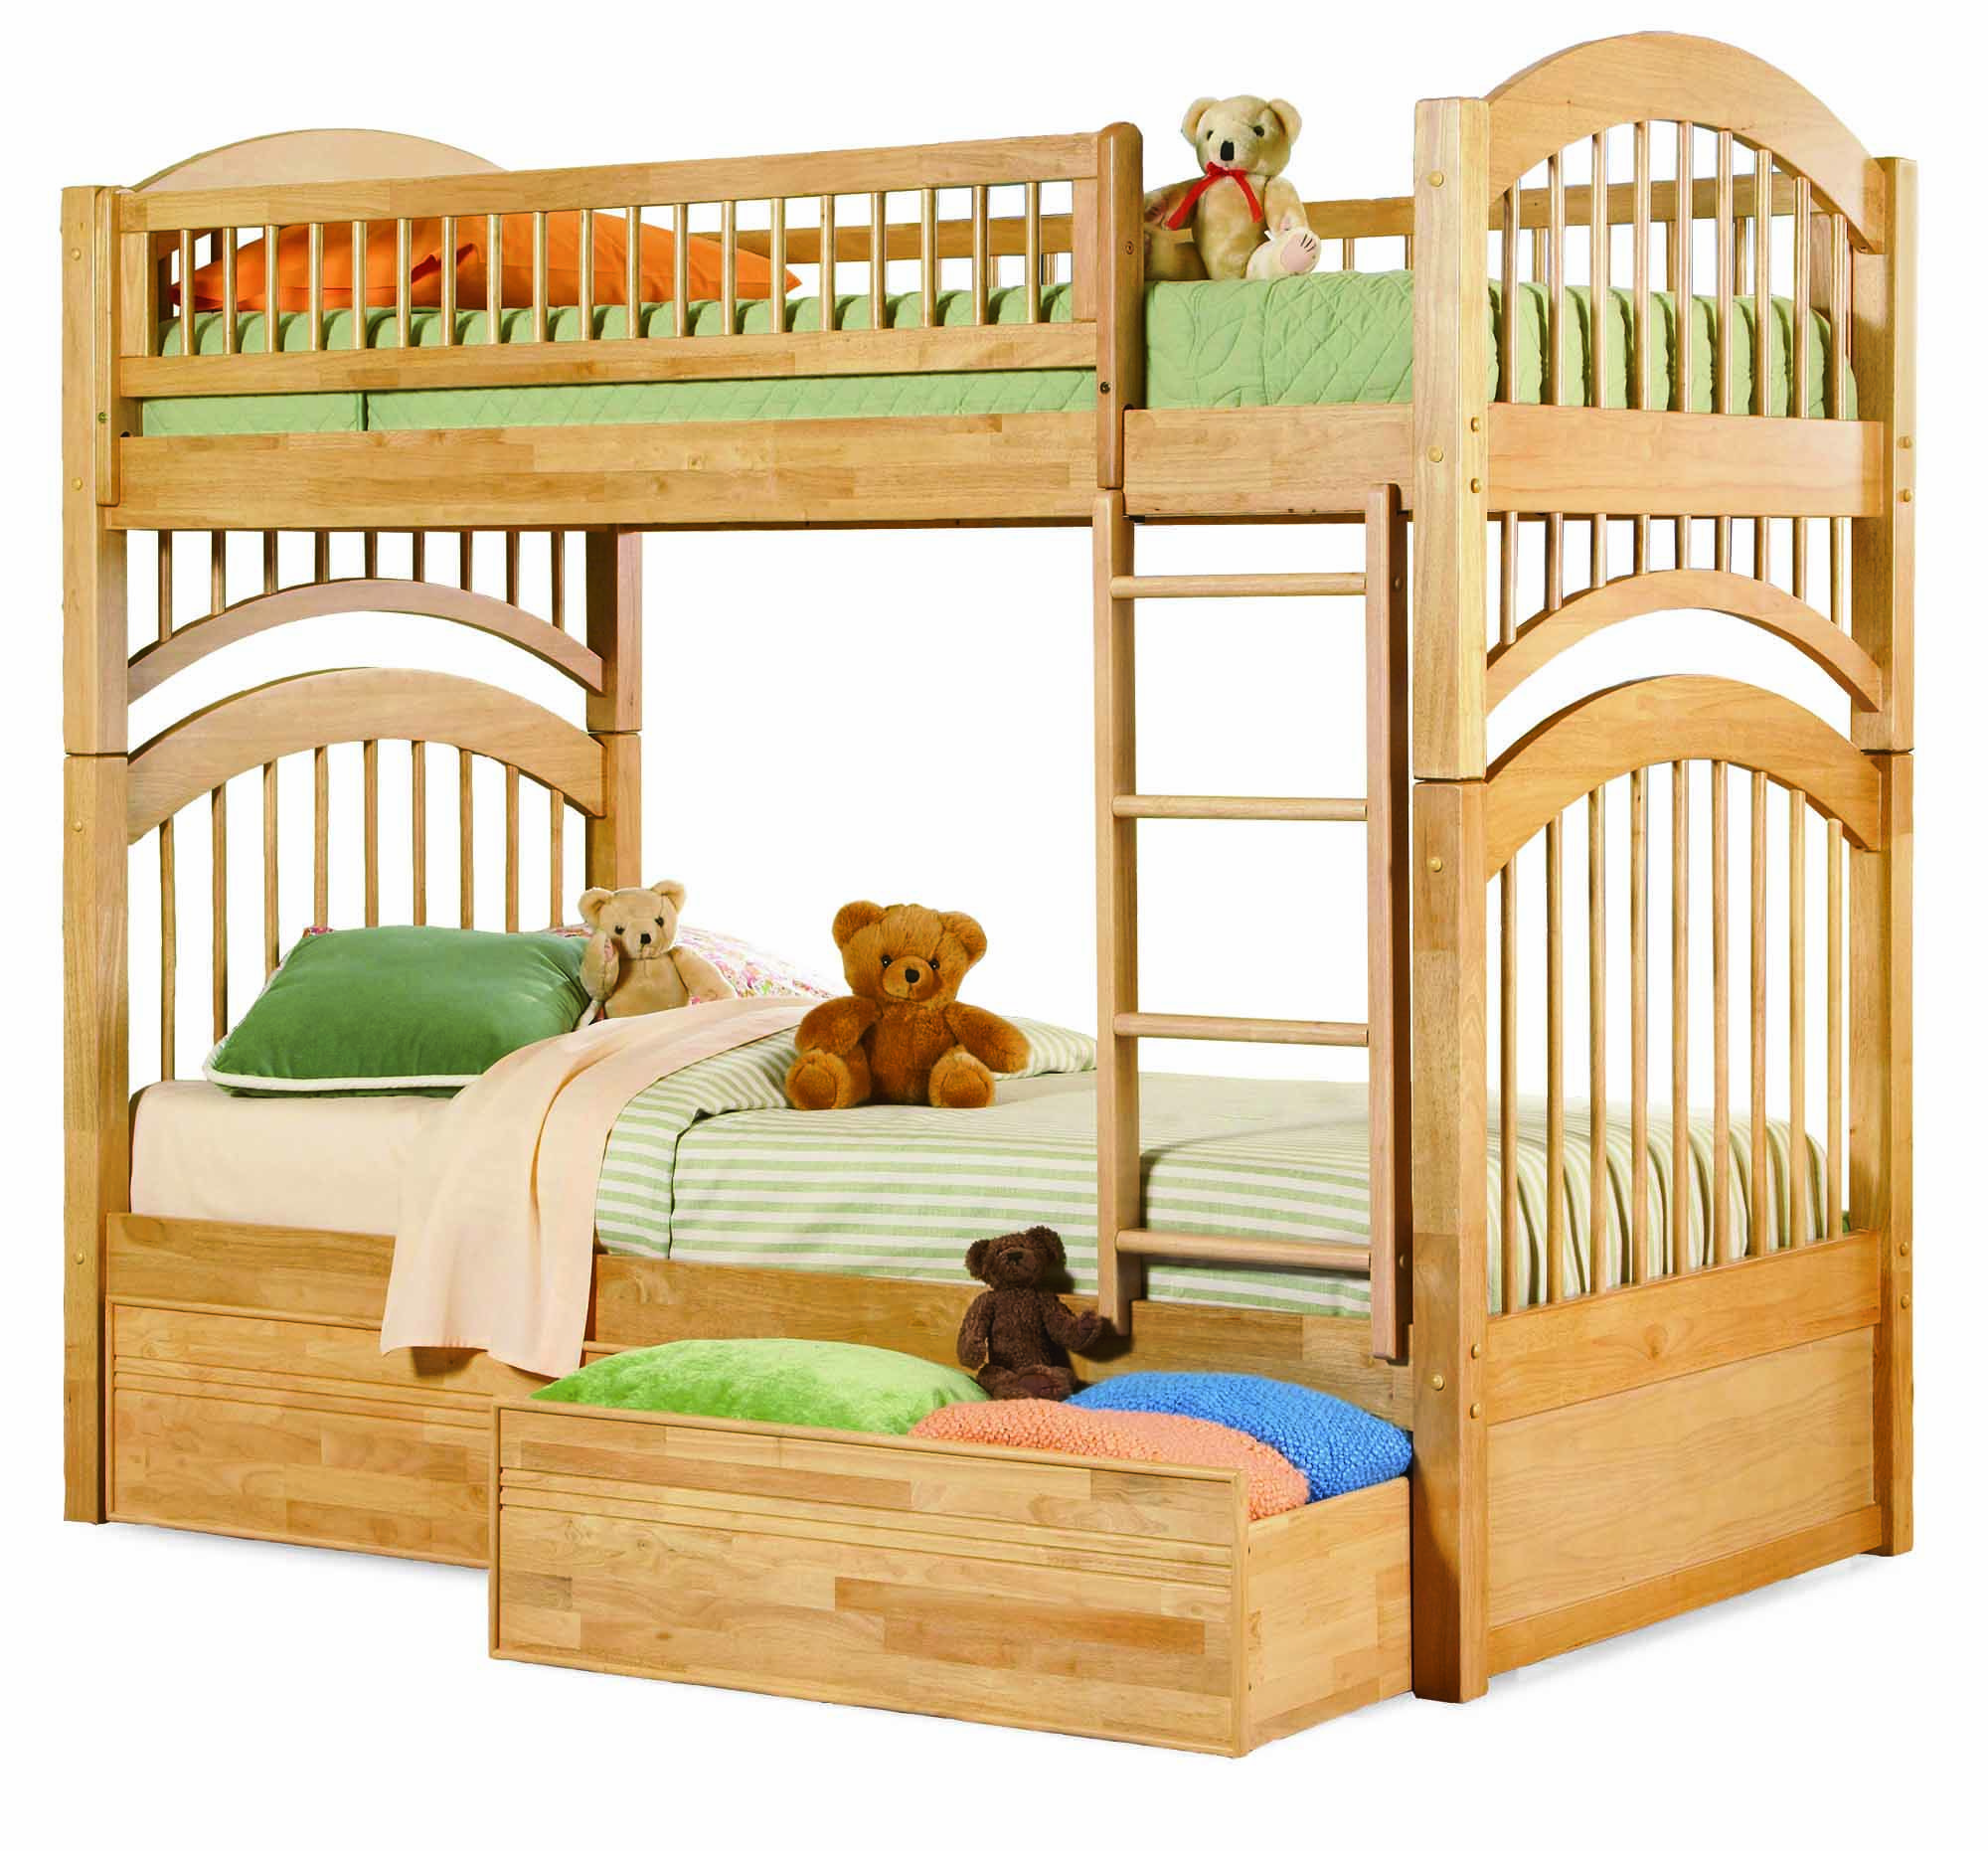 Natural Maple Windsor Bunk Bed Twin/Twin with 2 Flat Panel Bed Drawers